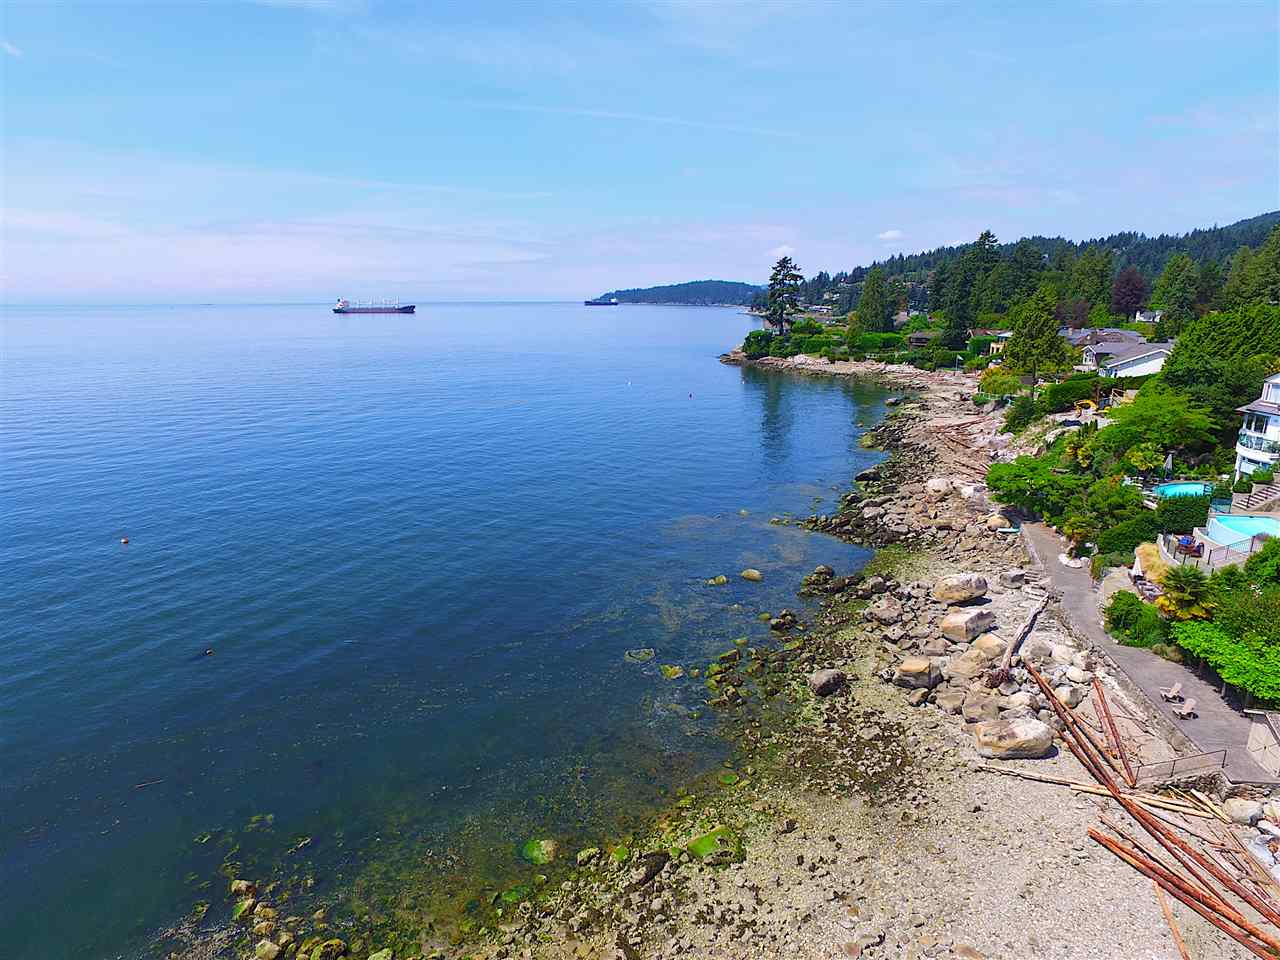 A once in a lifetime opportunity to own Waterfront on the Golden Mile or real estate.  Situated at the heart of Altamont in West Vancouver, 2970 Park Lane has easy access to downtown Vancouver & absolutely everything that the North Shore is known for.  The expanse of water to UBC, Stanley Park and further West to Vancouver Island is nothing less than breathtaking! The home has been in the family for over 40 years, the bones of it are good.  With a few updates, this could be a generous rental property while preparing your building plans.  Long known as a dream place to call home...visit Park Lane to see why!